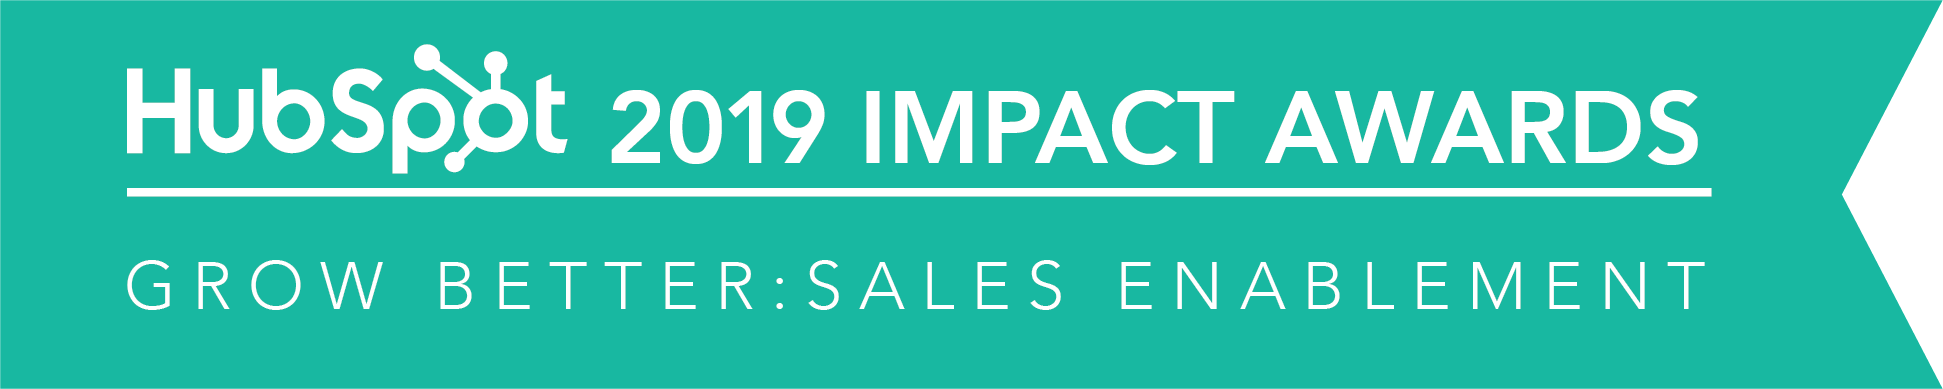 Hubspot_ImpactAwards_2019_SalesEnablement-02-2